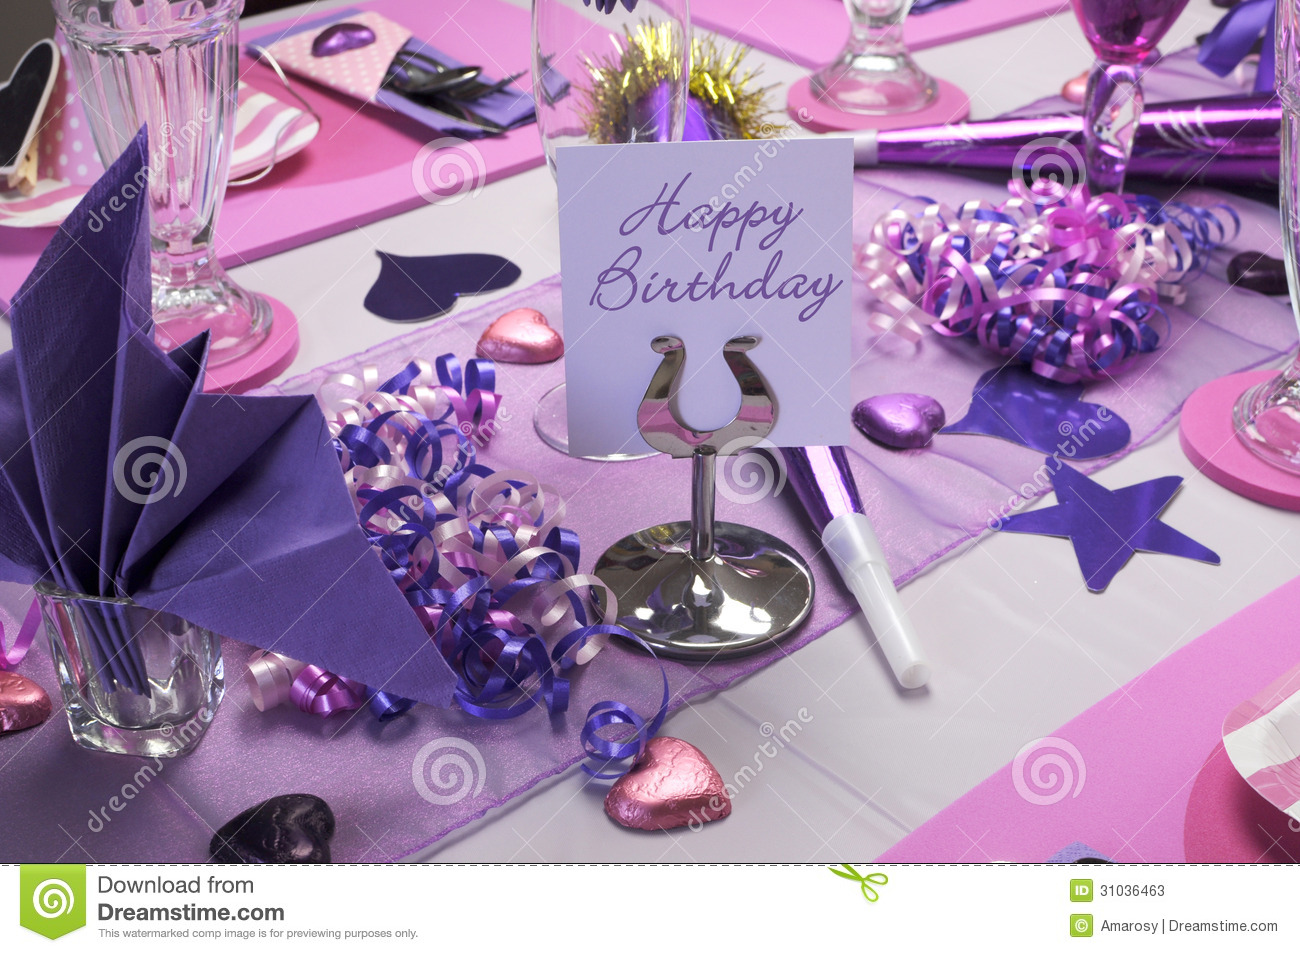 Pink And Purple Birthday Party Table Setting. Stock Image - Image of ...